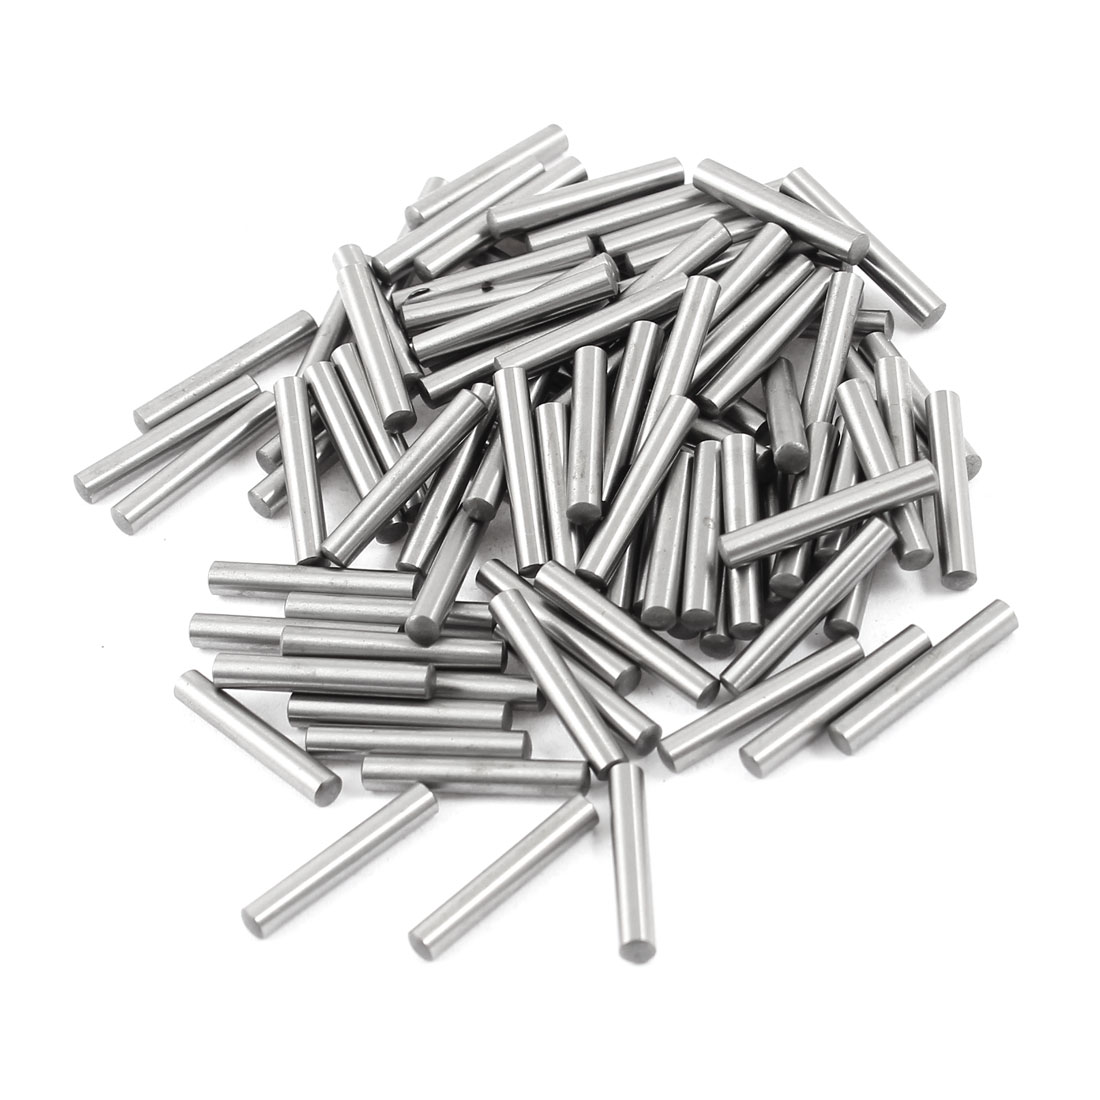 100 Pcs Stainless Steel 3.15mm x 19.8mm Parallel Dowel Pins Fasten Elements Silver Tone